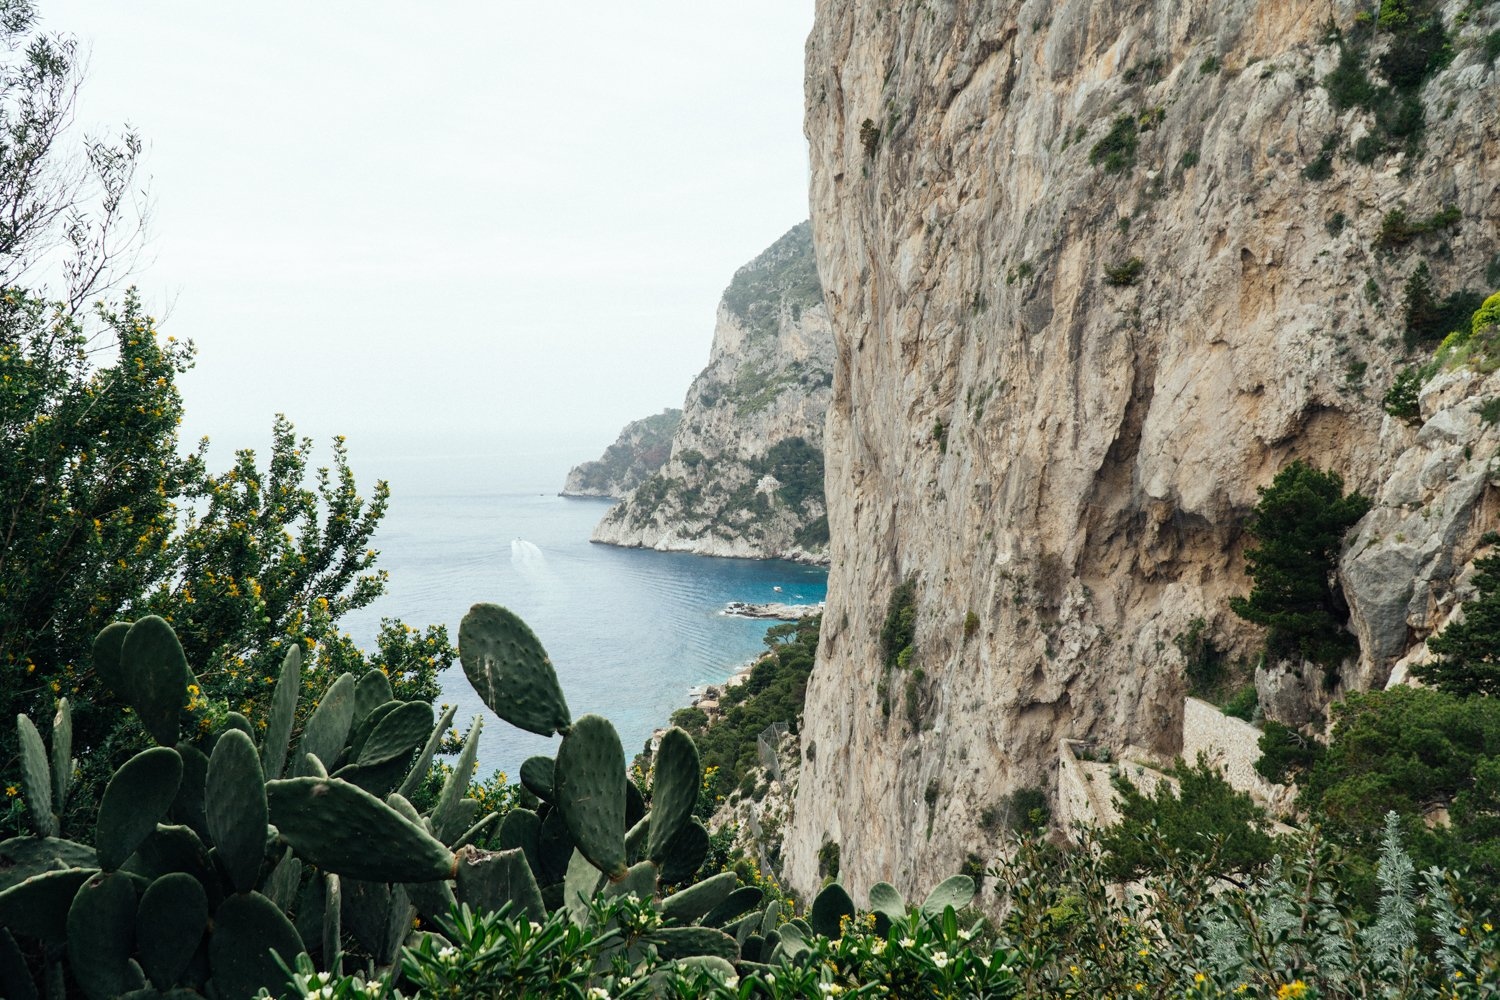 An image of Capri, Italy by travel blogger Meaghan Murray of The Stopover